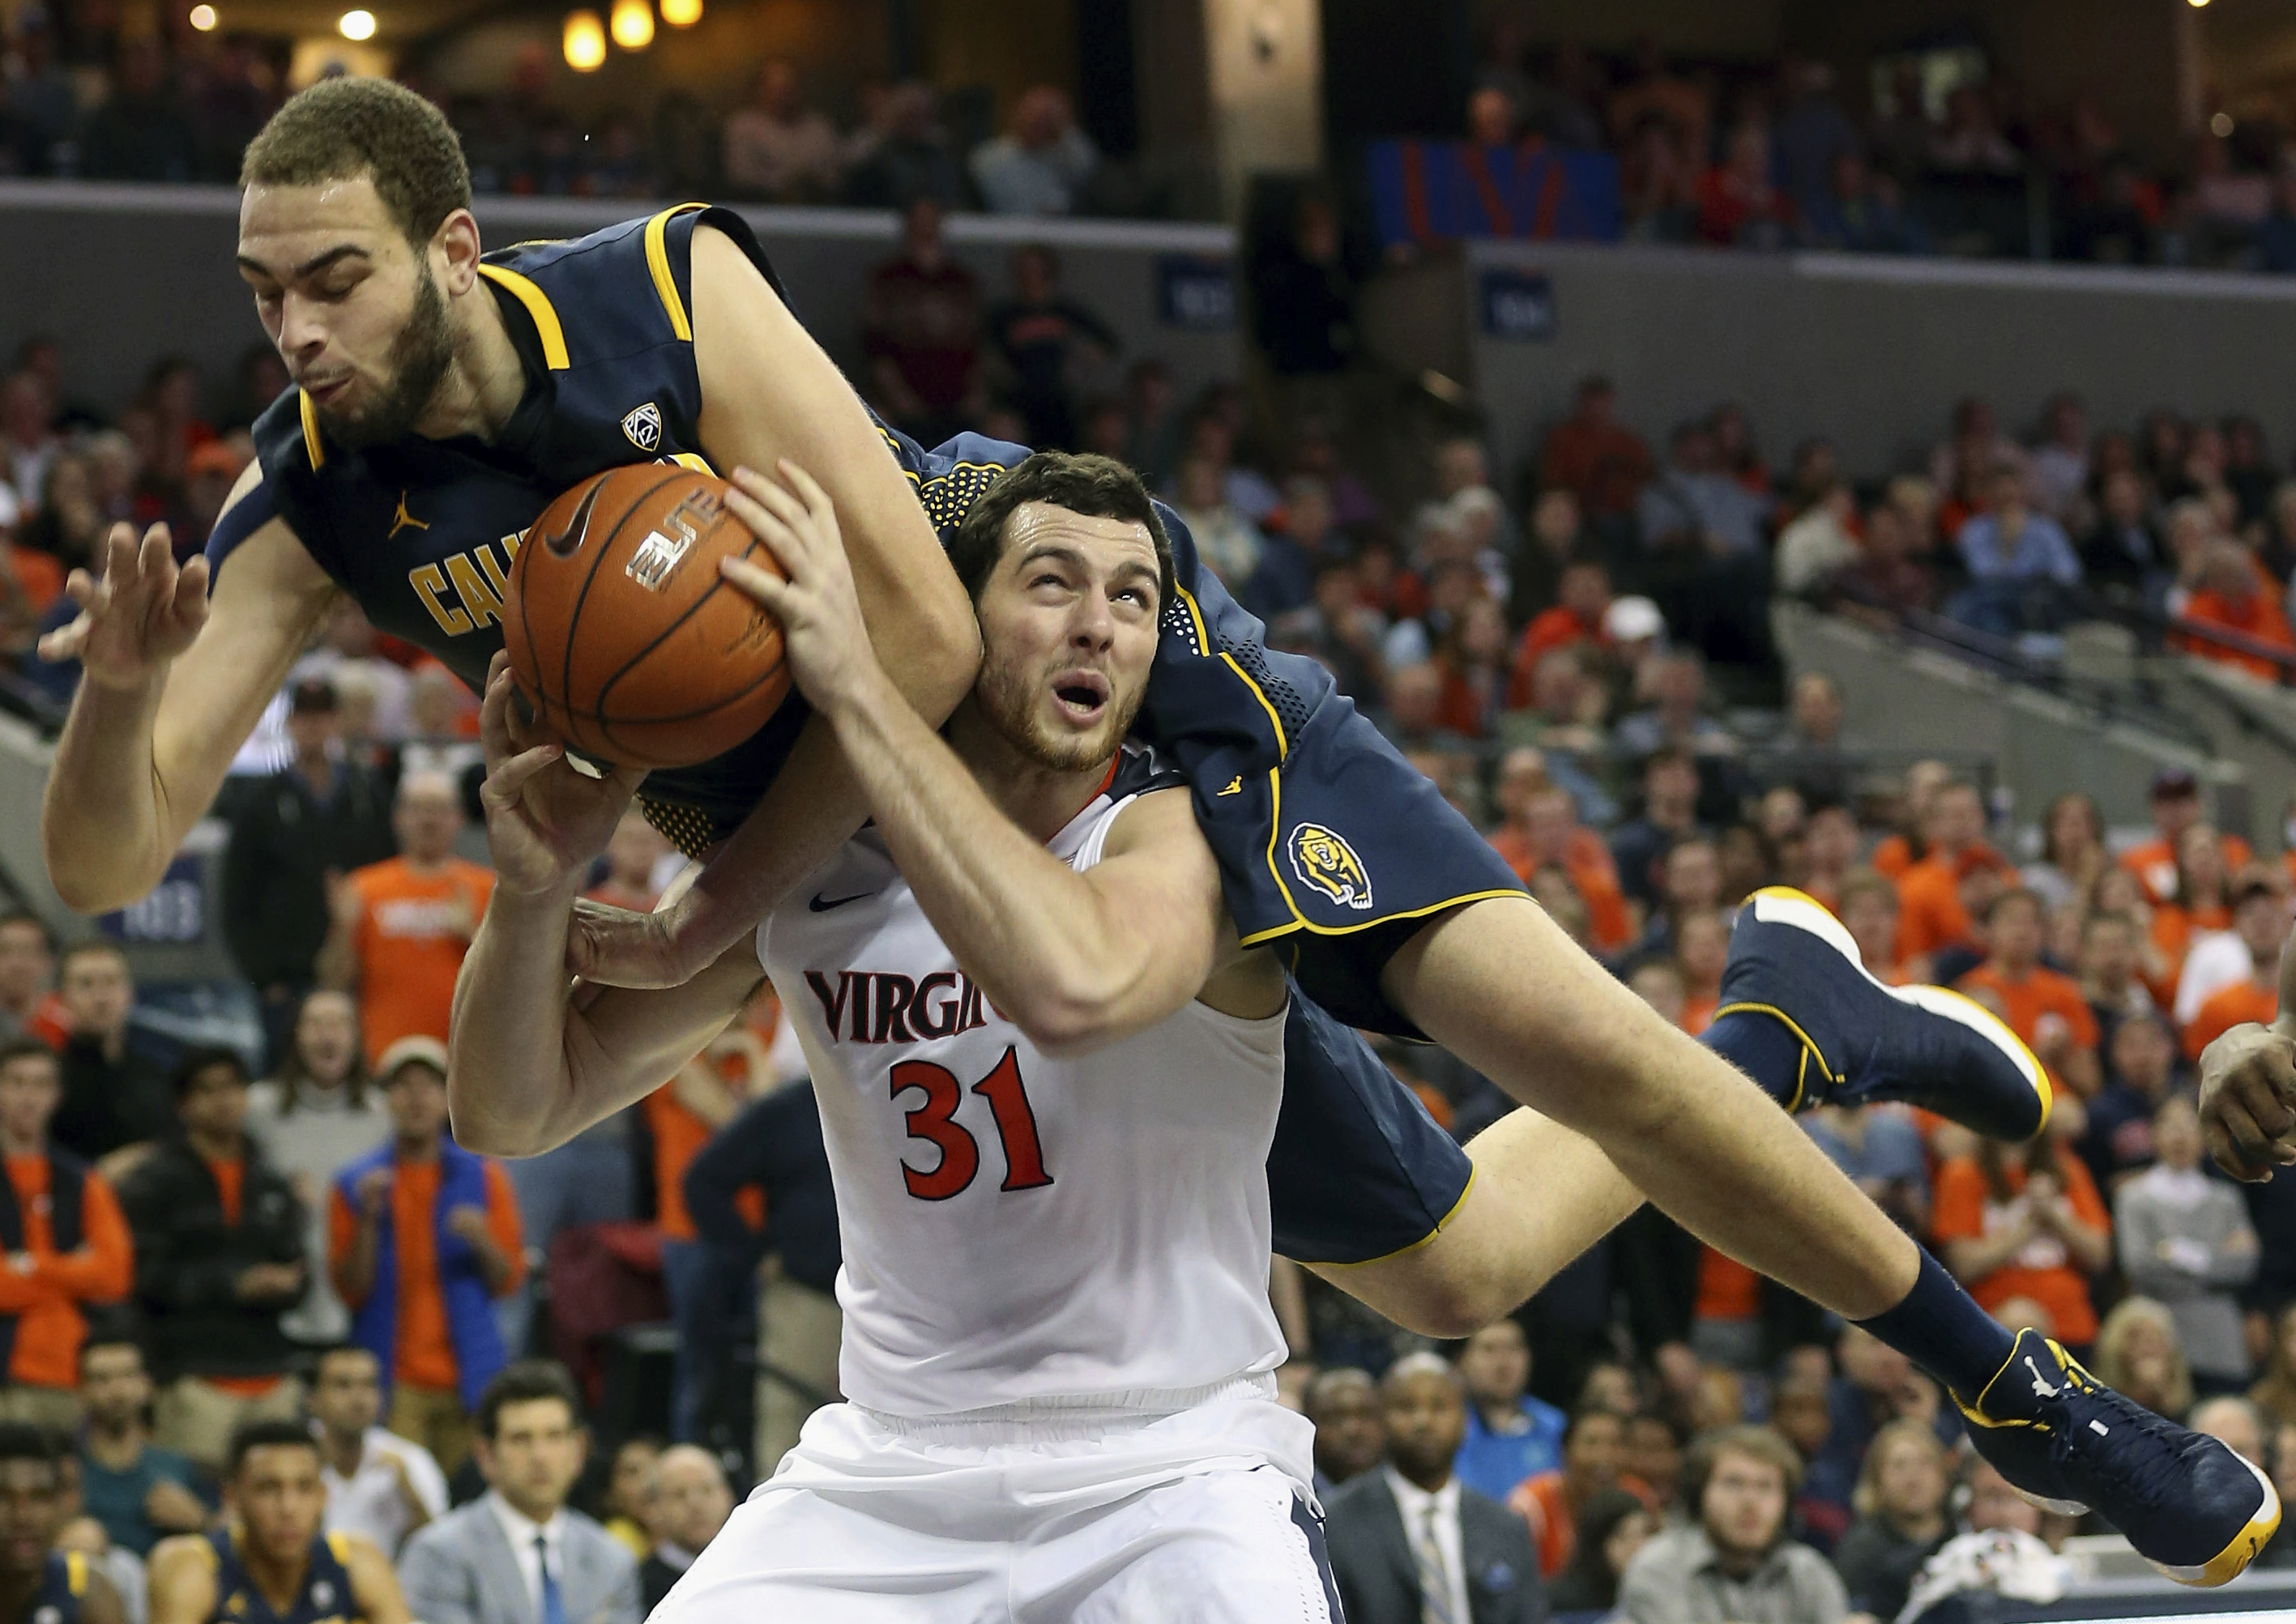 Virginia forward Jarred Reuter (31) gets fouled by California center Kameron Rooks during an NCAA basketball game Tuesday Dec. 22, 2015, in Charlottesville, Va. (AP Photo/Andrew Shurtleff)